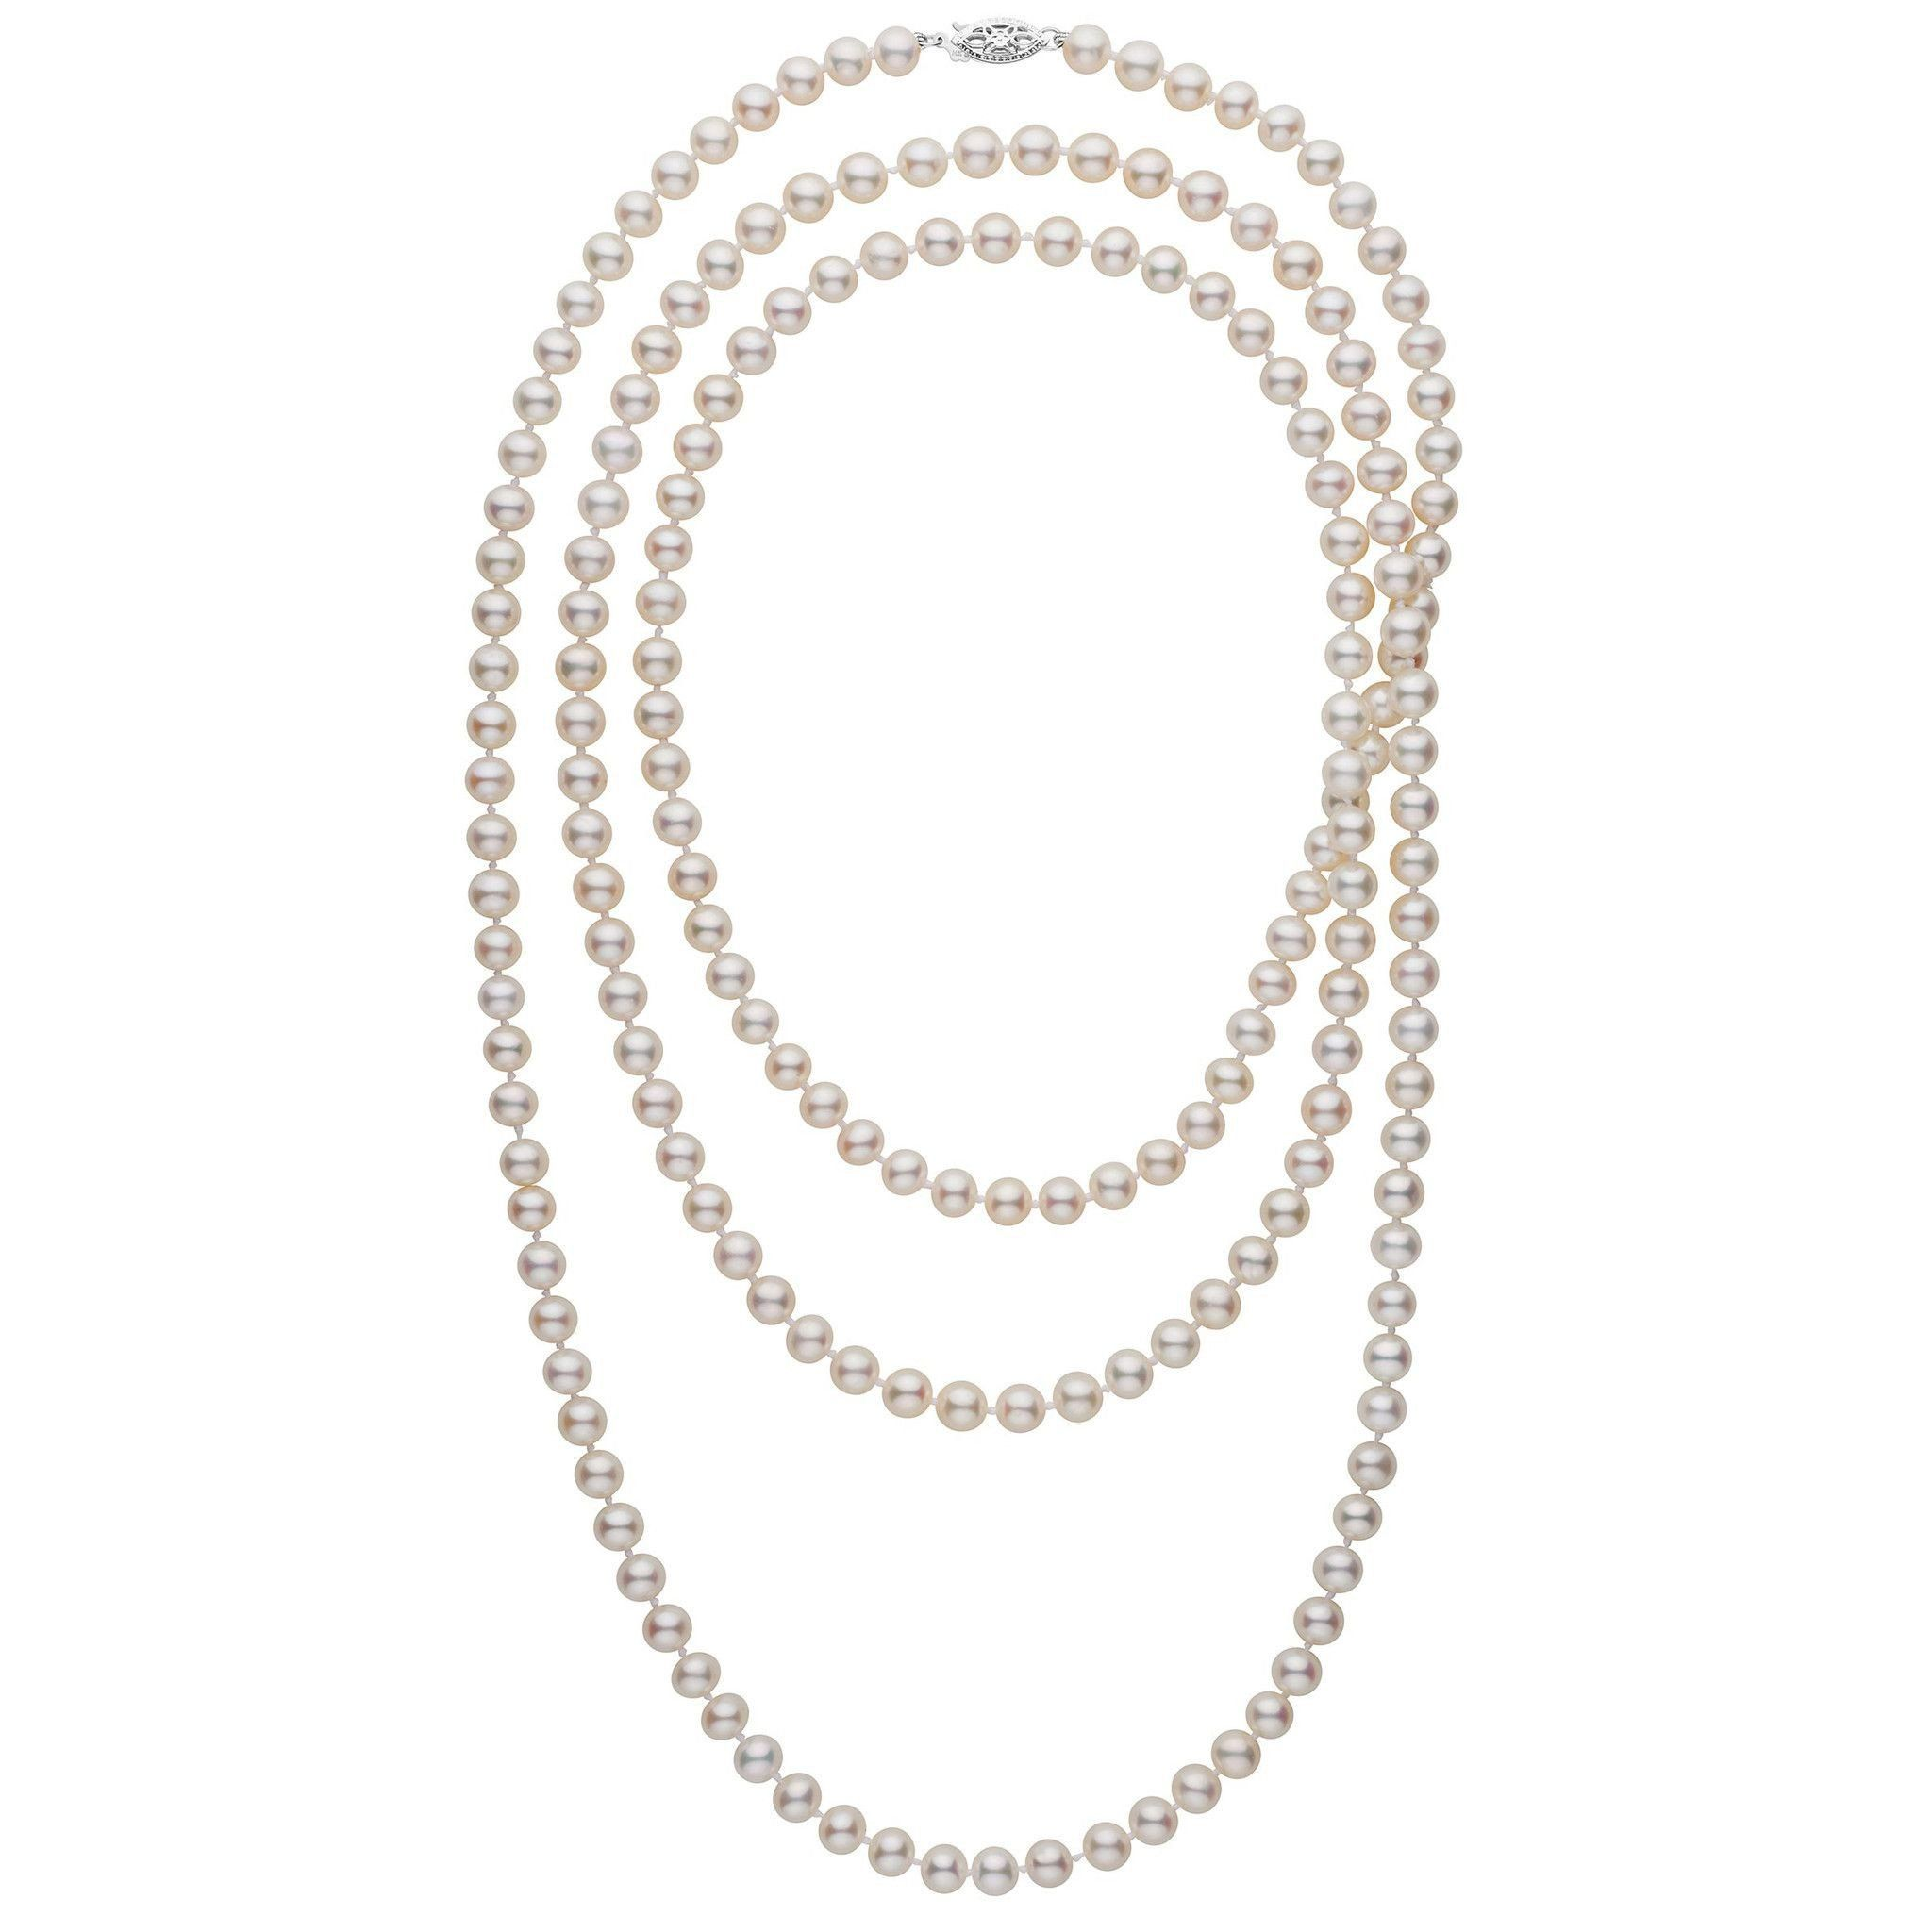 54-inch 6.5-7.0 mm AA+ White Freshwater Pearl Necklace